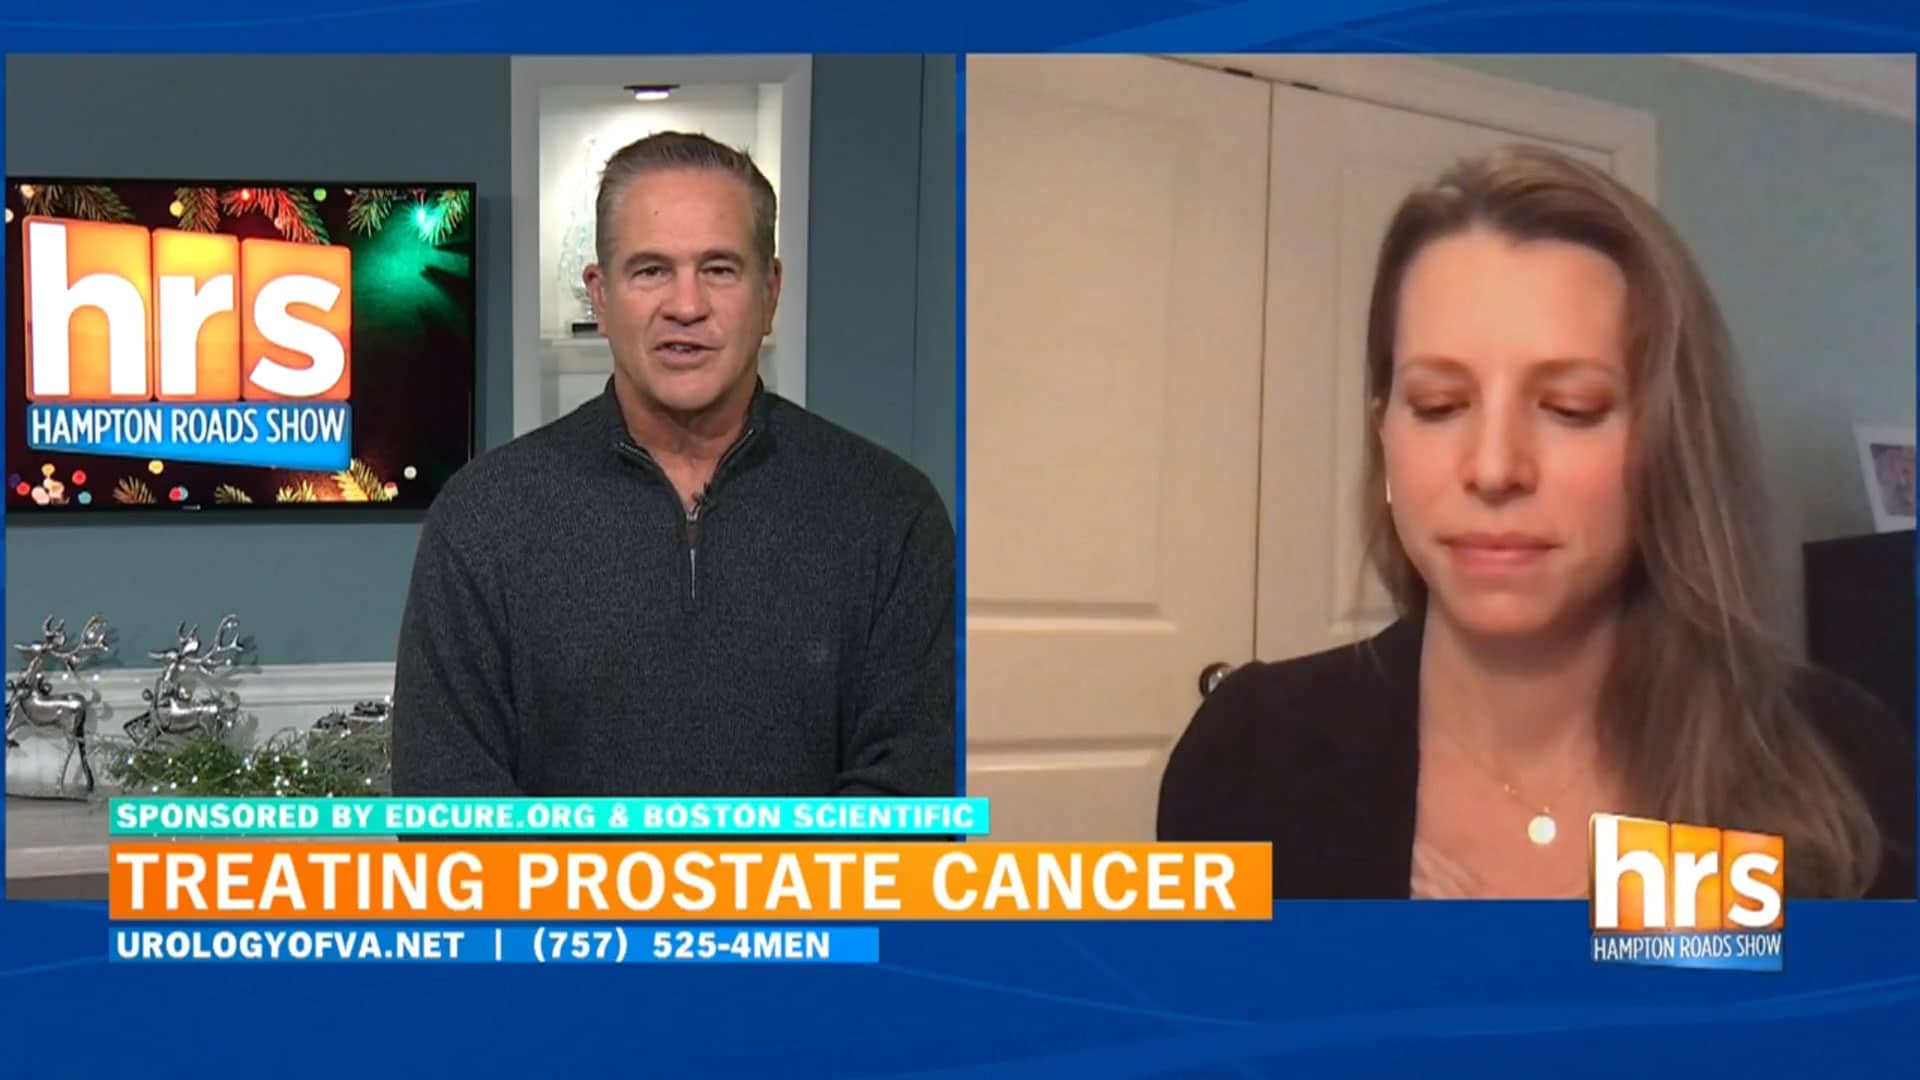 Treating Prostate Cancer with Dr. Jessica Delong